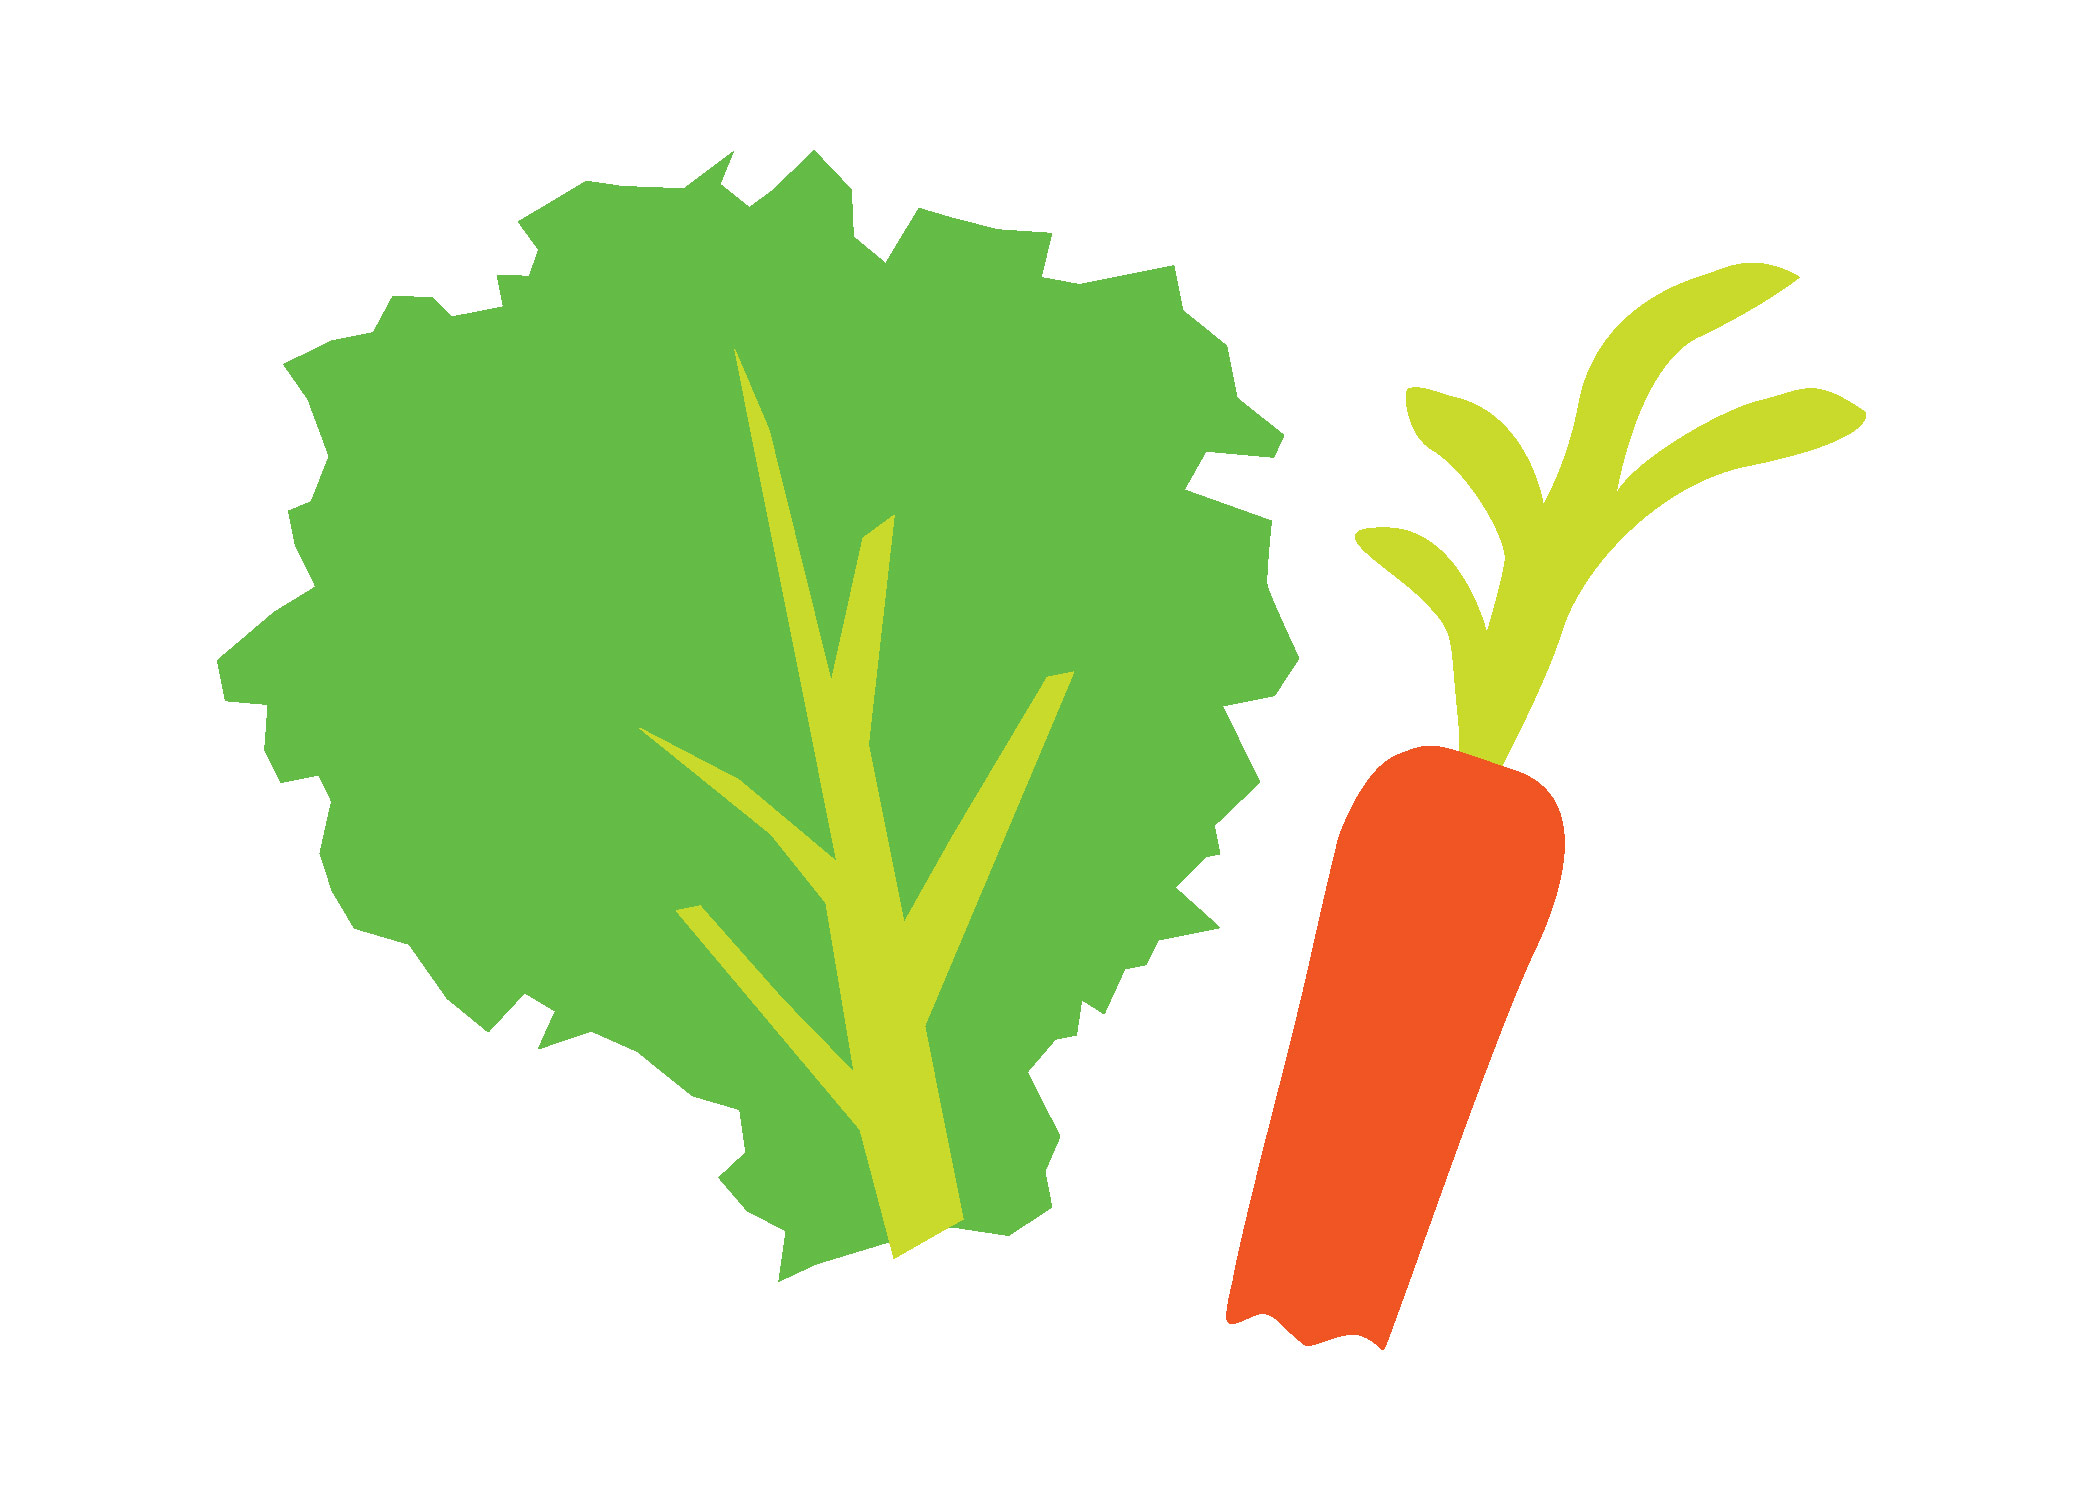 LAcompost_icons_vegetables.jpg